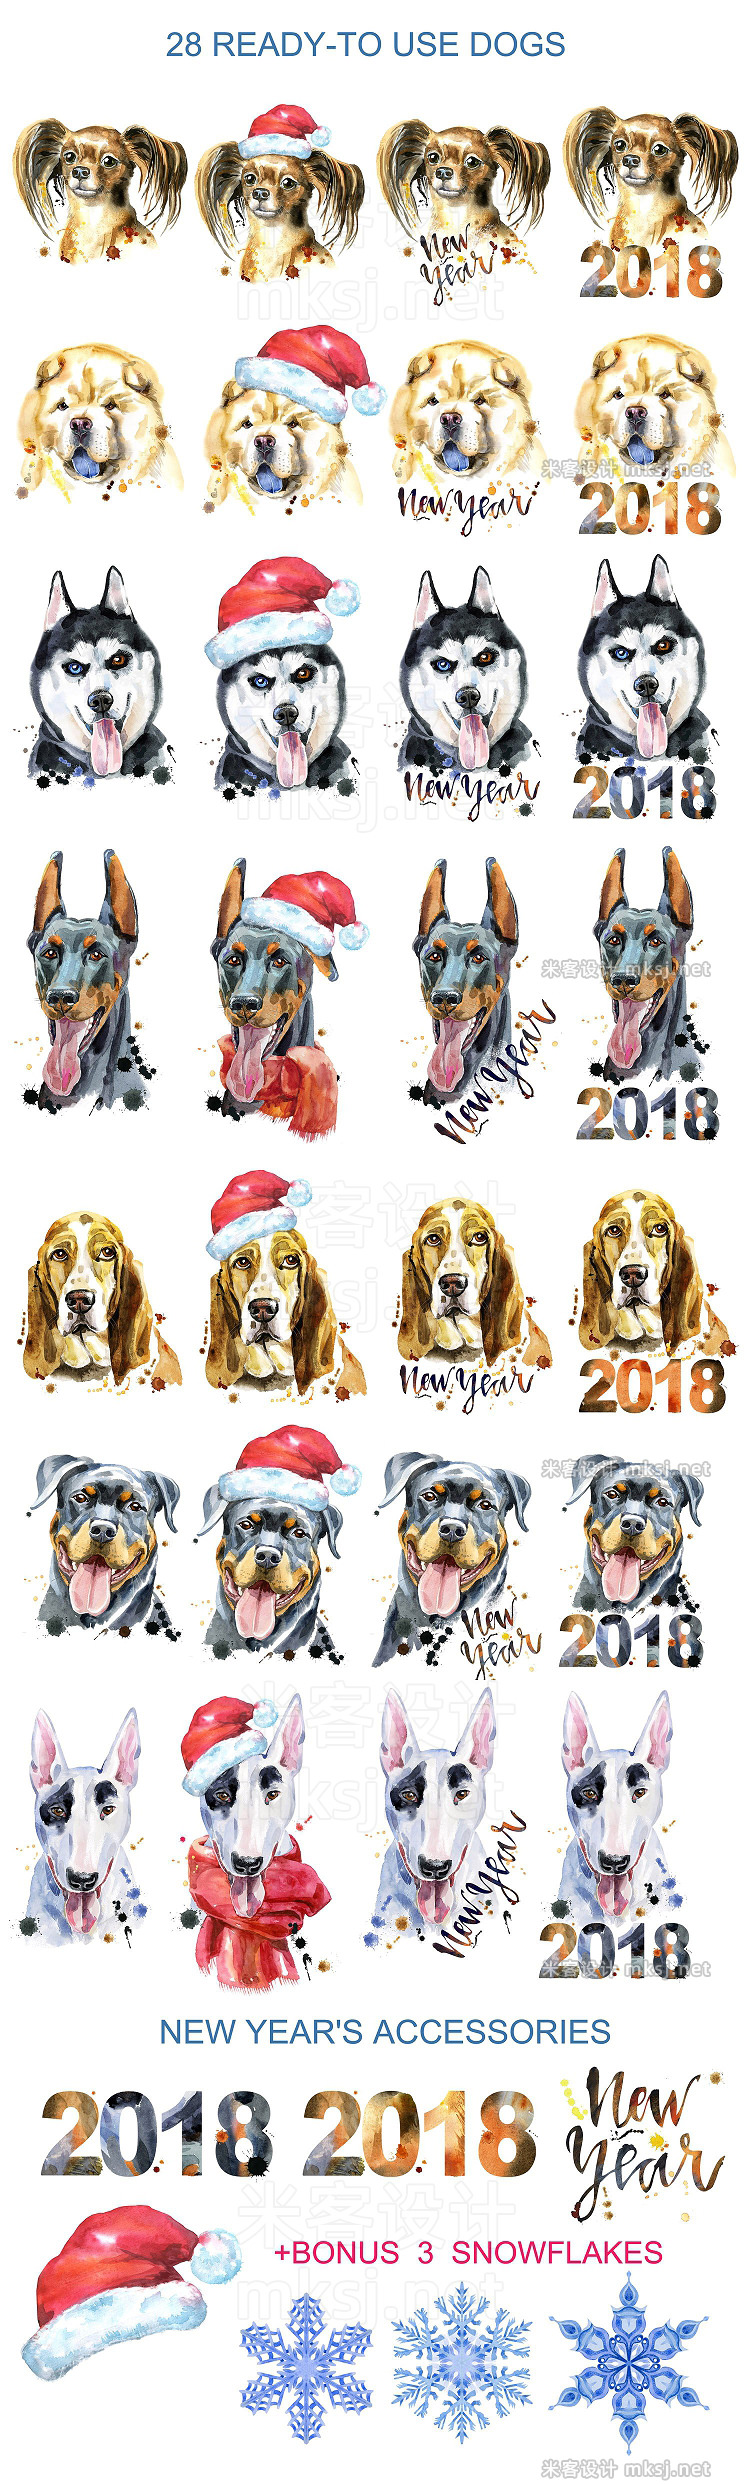 png素材 Watercolor dogs New Year's set